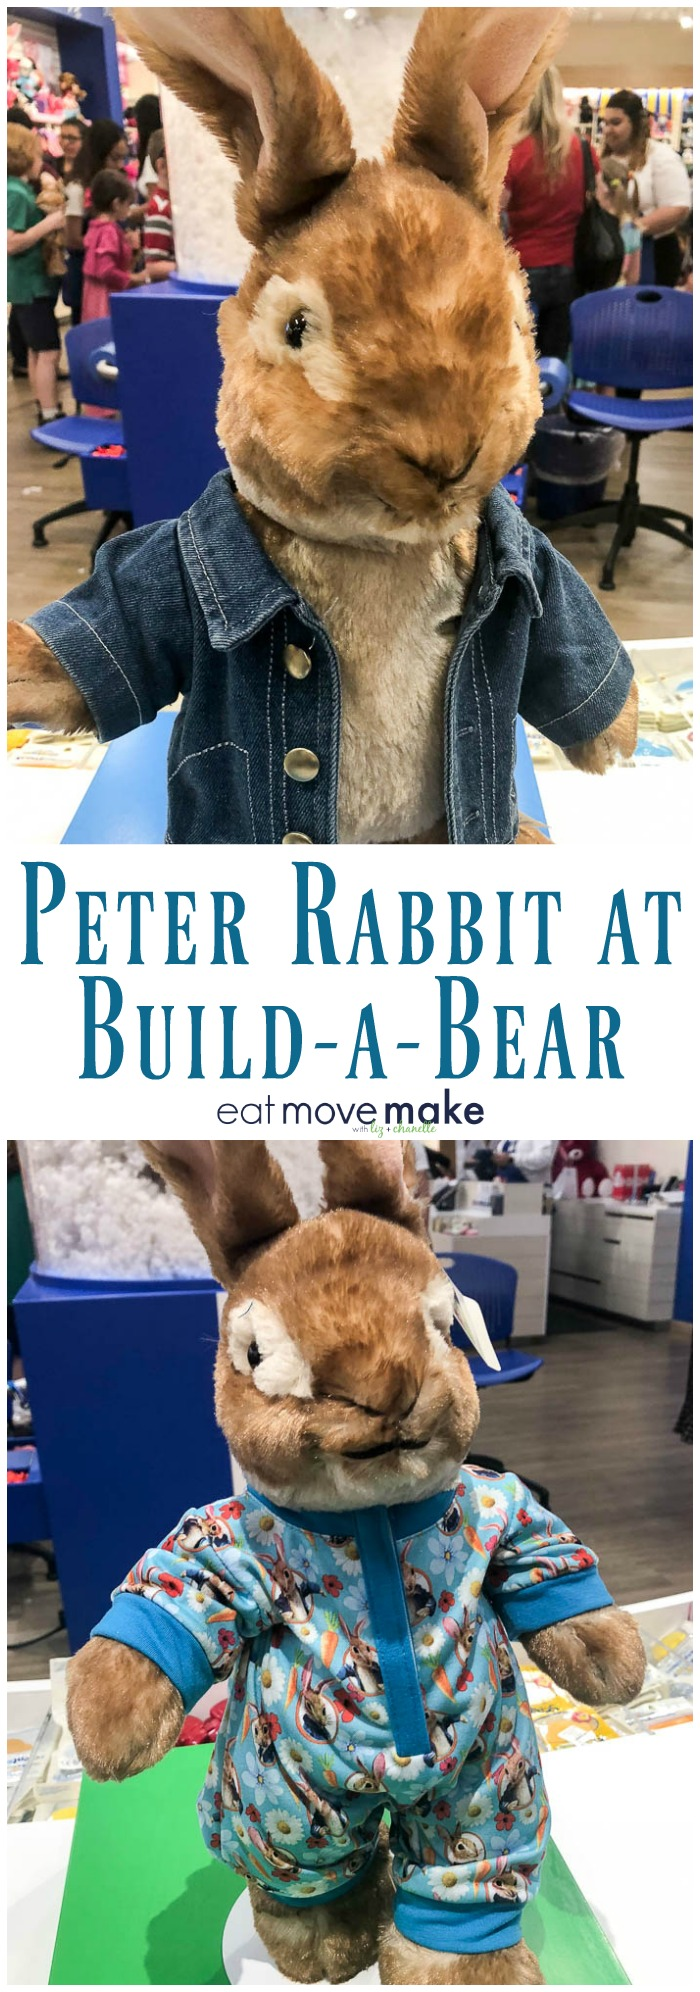 Peter Rabbit Build-a-Bear